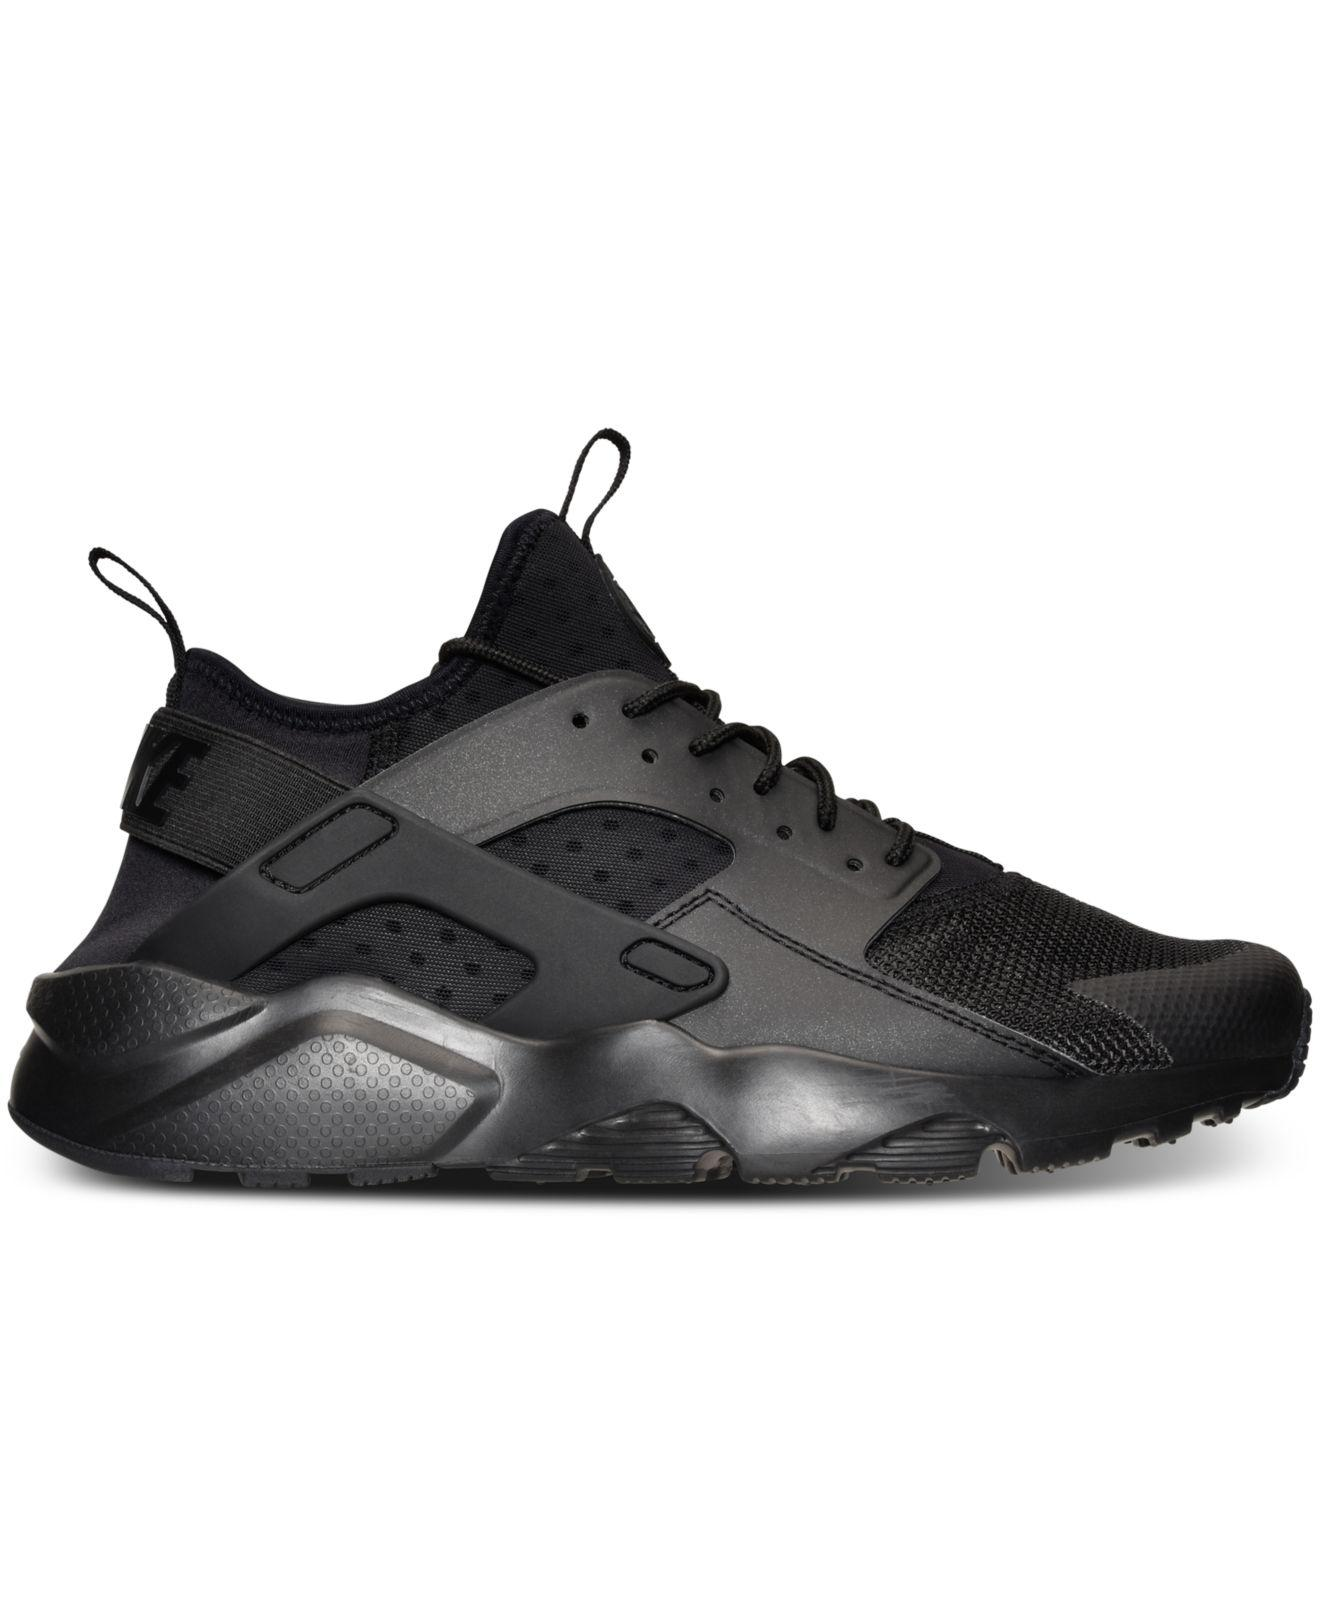 timeless design 71036 9a94b Lyst - Nike Men s Air Huarache Run Ultra Running Sneakers From Finish Line  in Black for Men - Save 16%